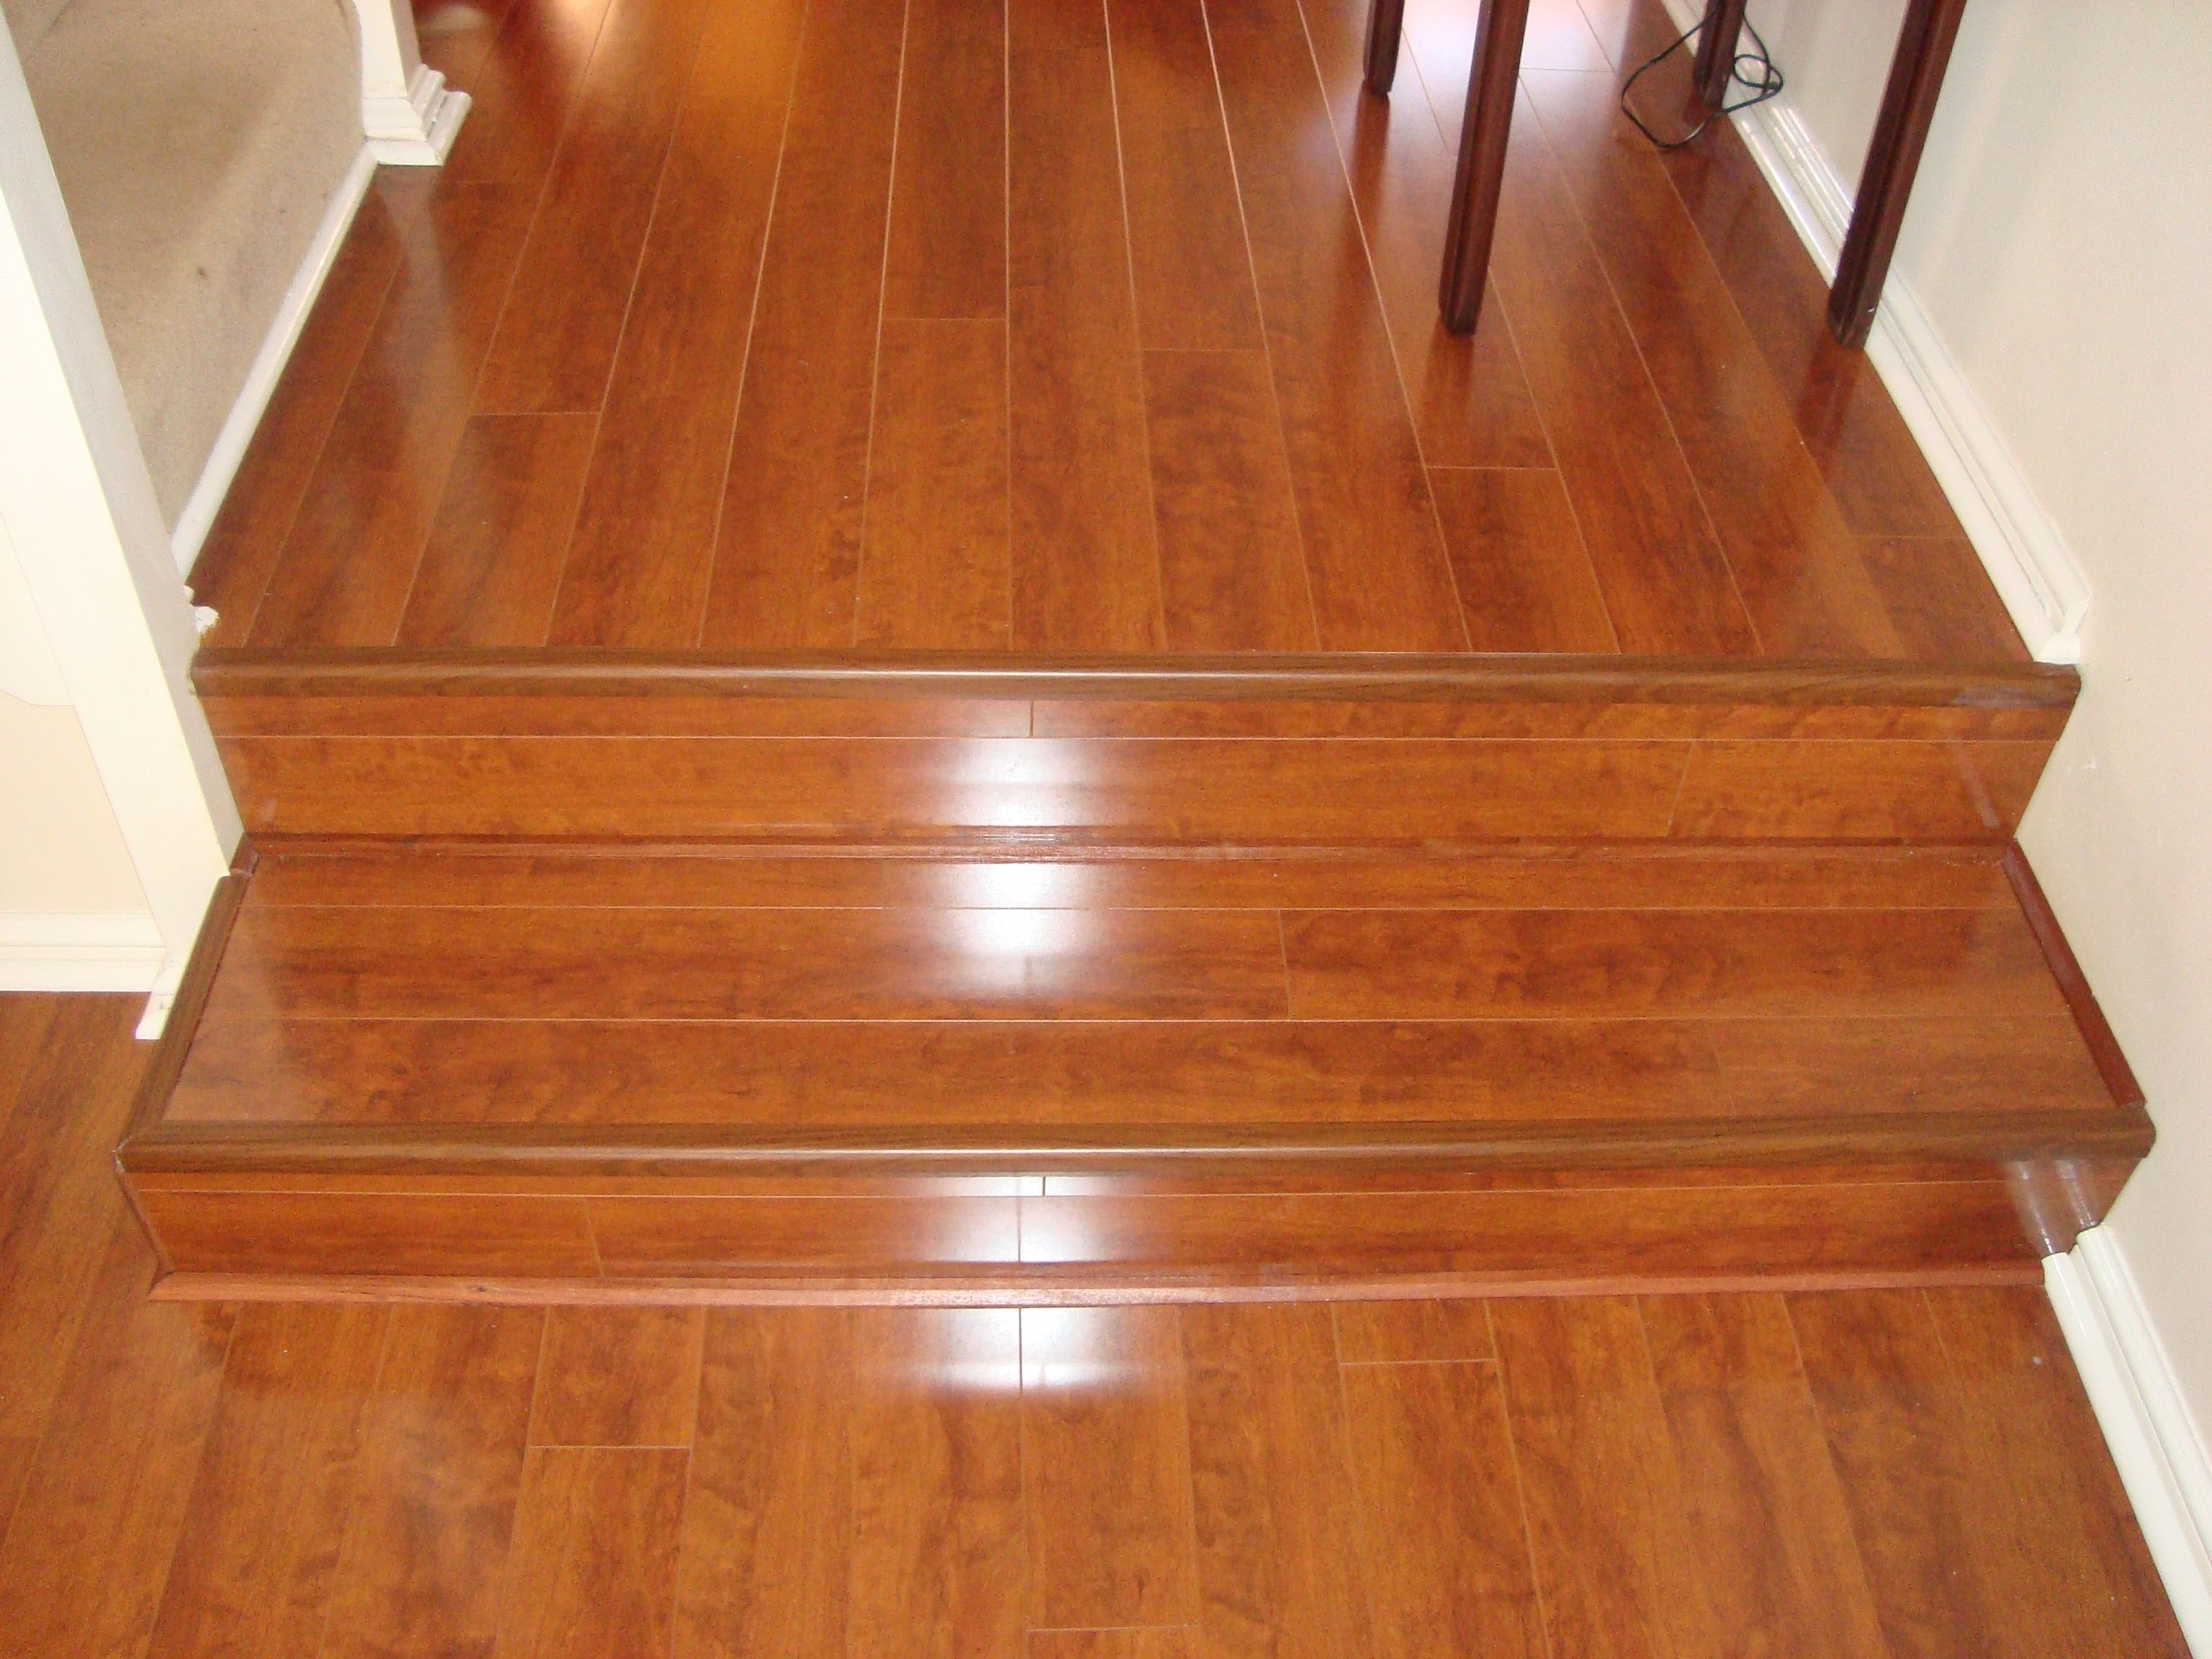 wood laminate doing design faux ideas damage to how clean redoubtable amp flooring floors without floor shop nobby